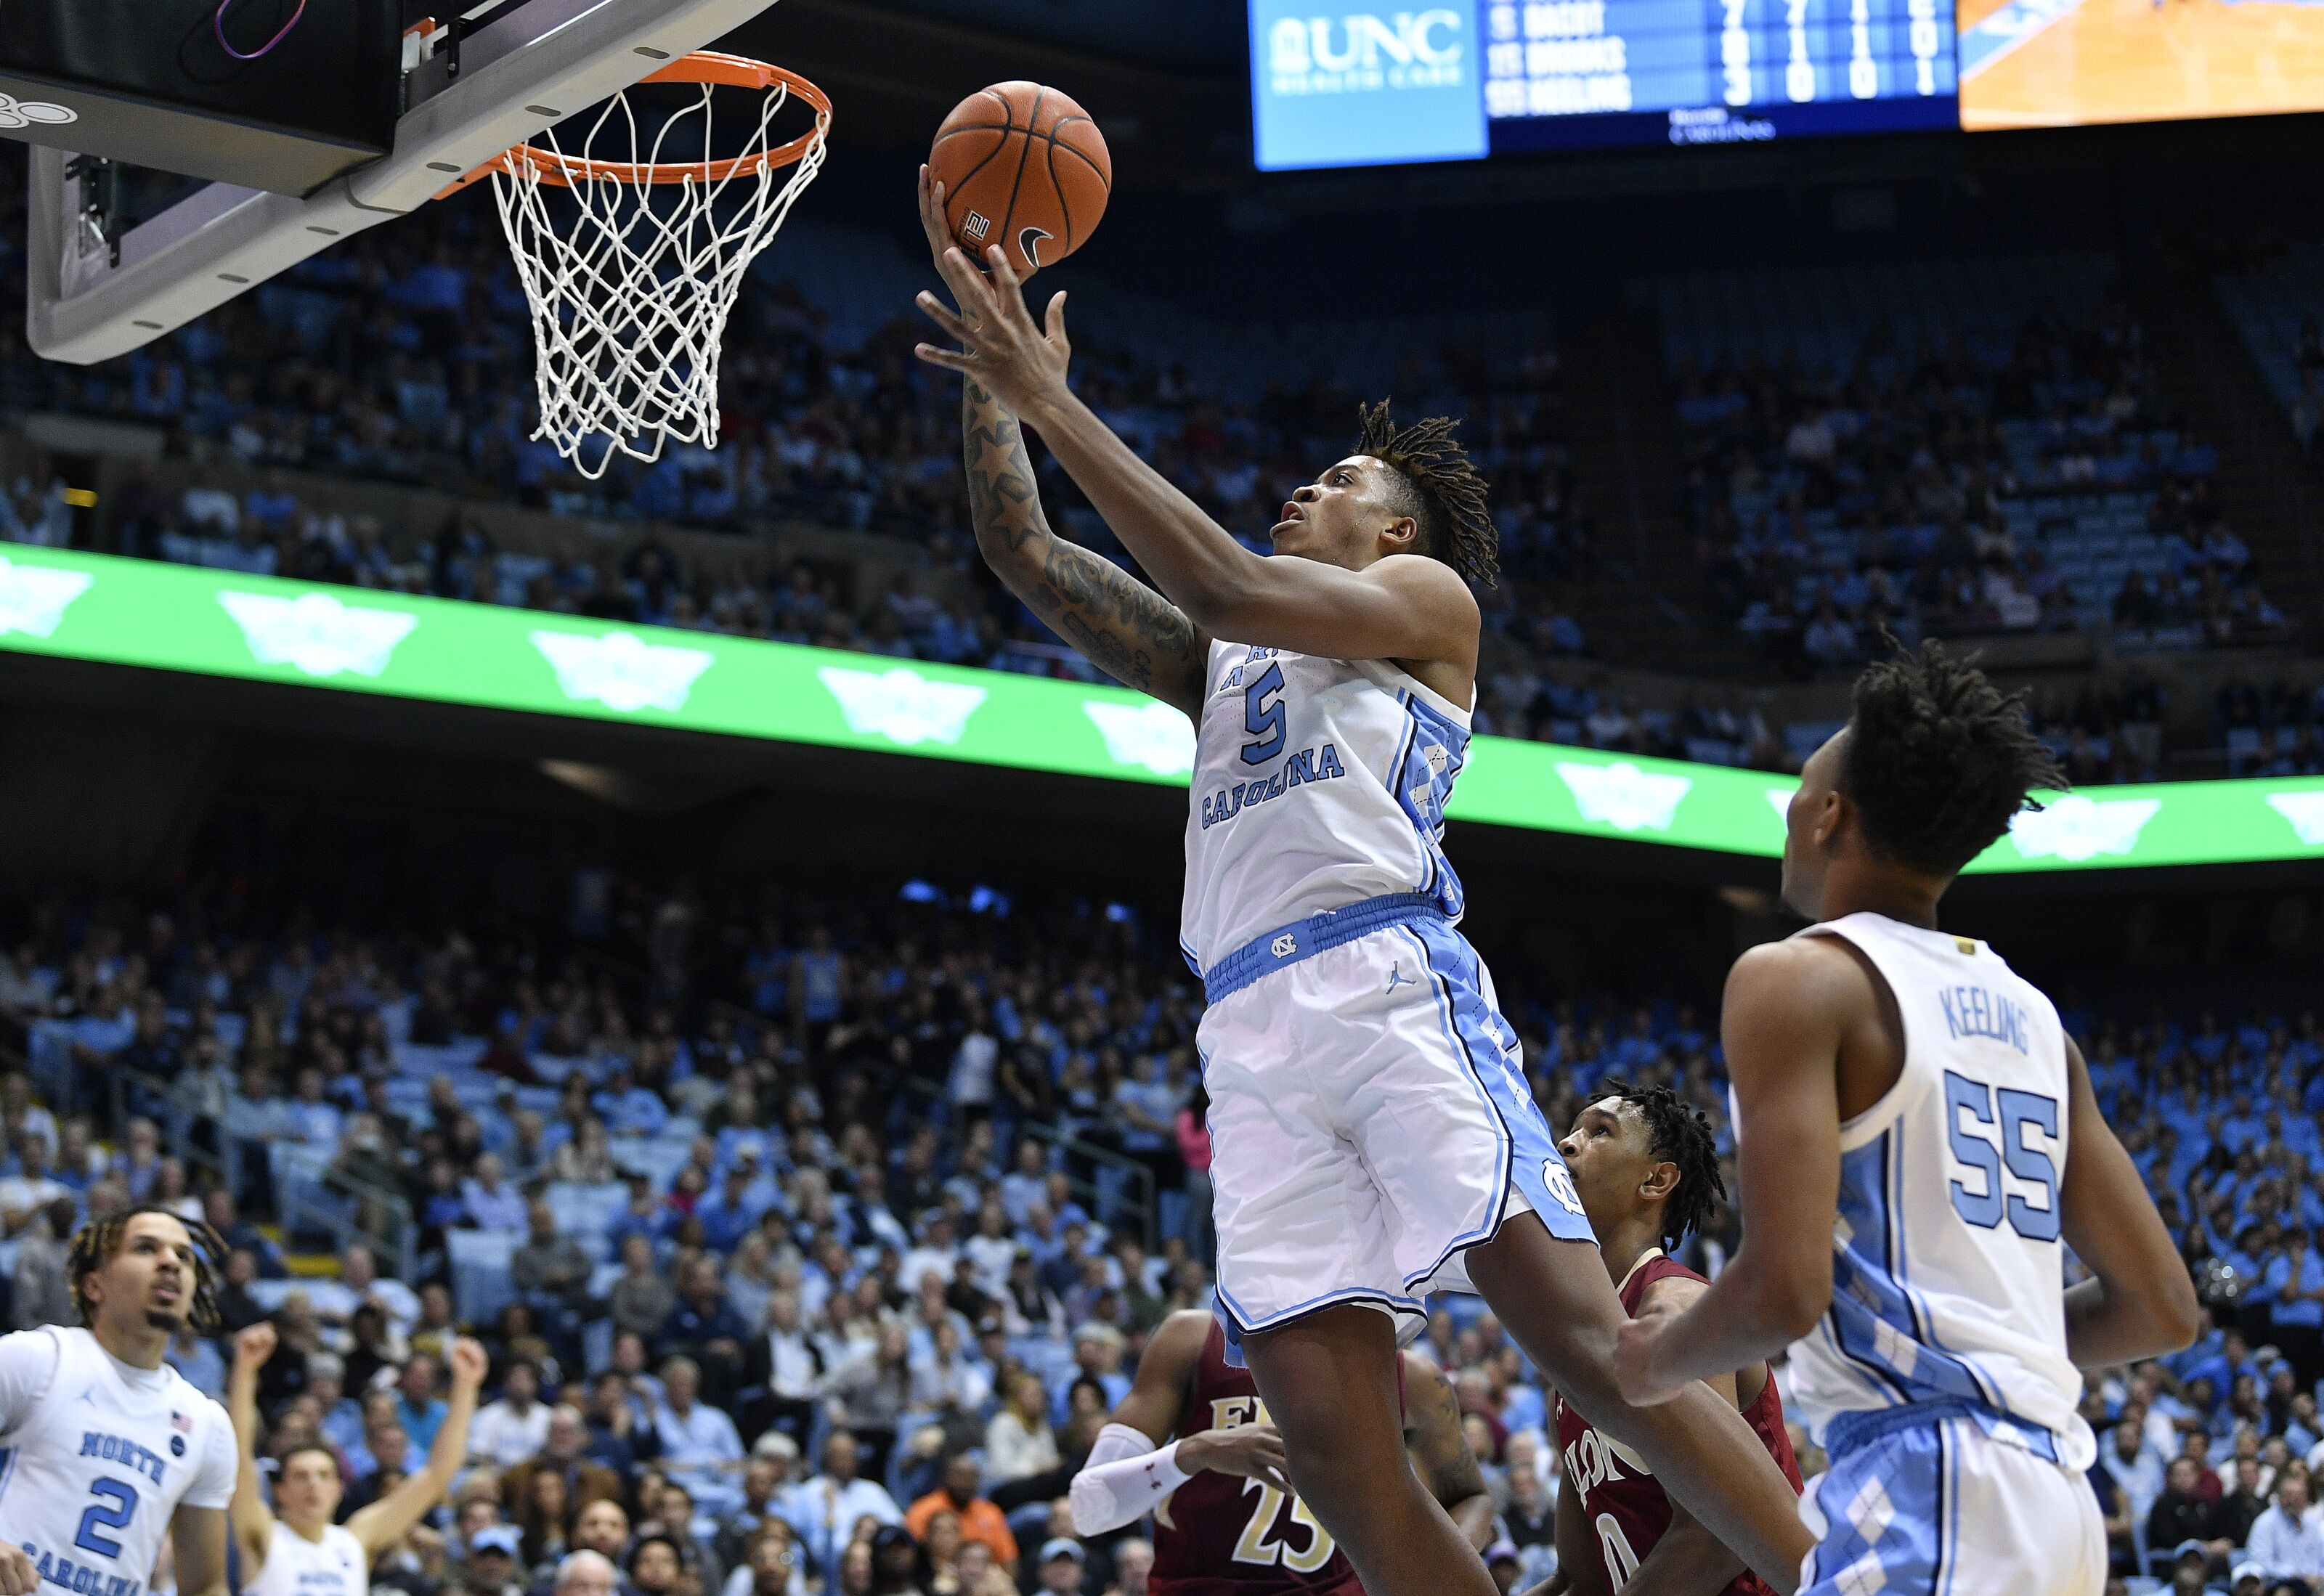 UNS Basketball: Armando Bacot likely OUT vs Virginia Cavaliers